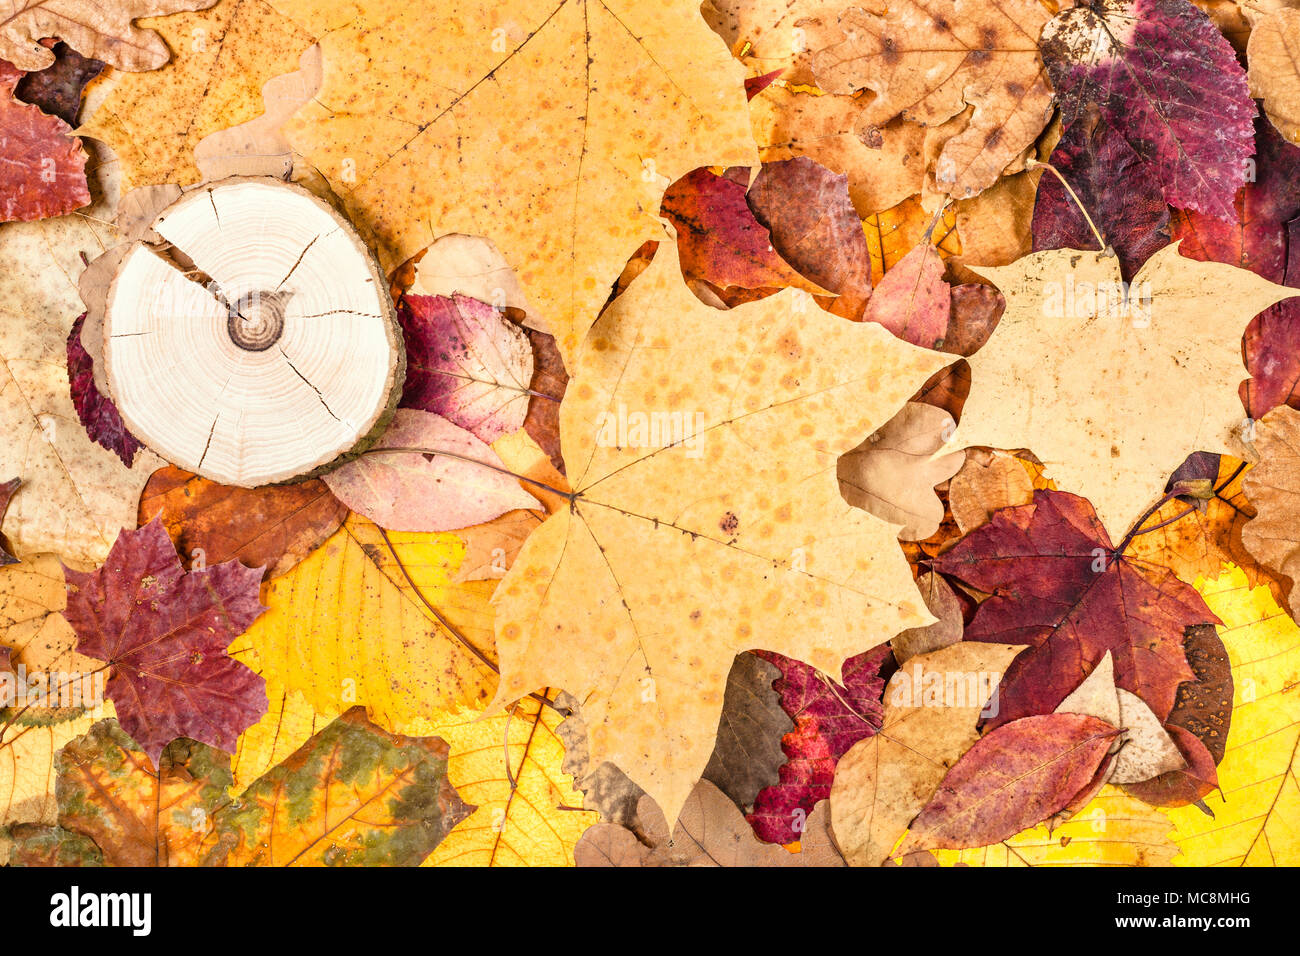 top view of varicoloured fallen autumn leaves and sawed wood - Stock Image